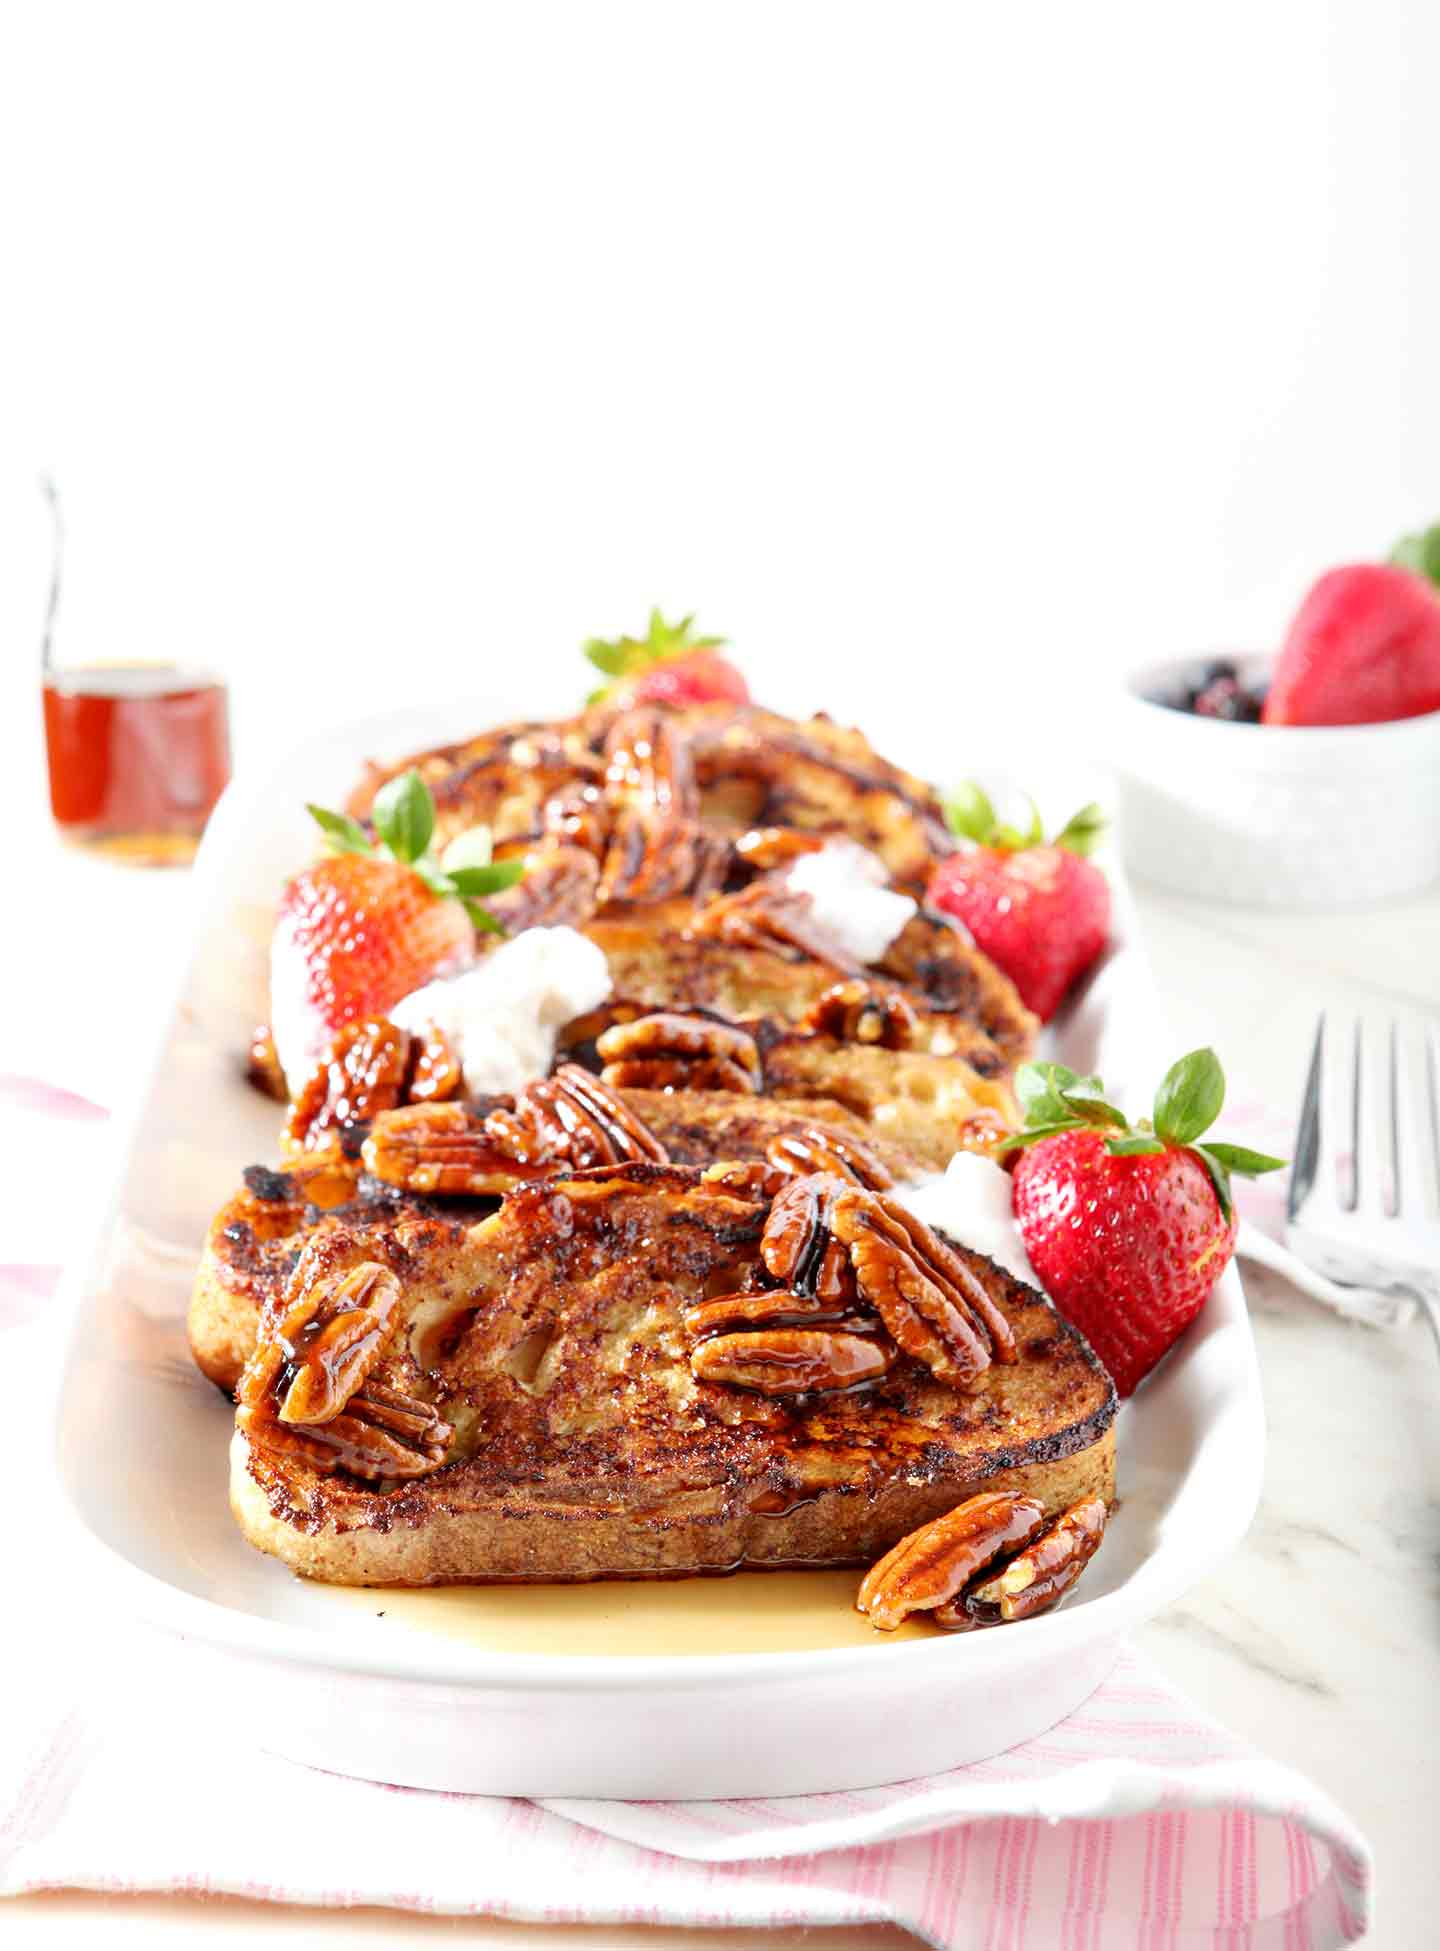 Praline French Toast is served on a platter with coconut cream and fresh strawberries